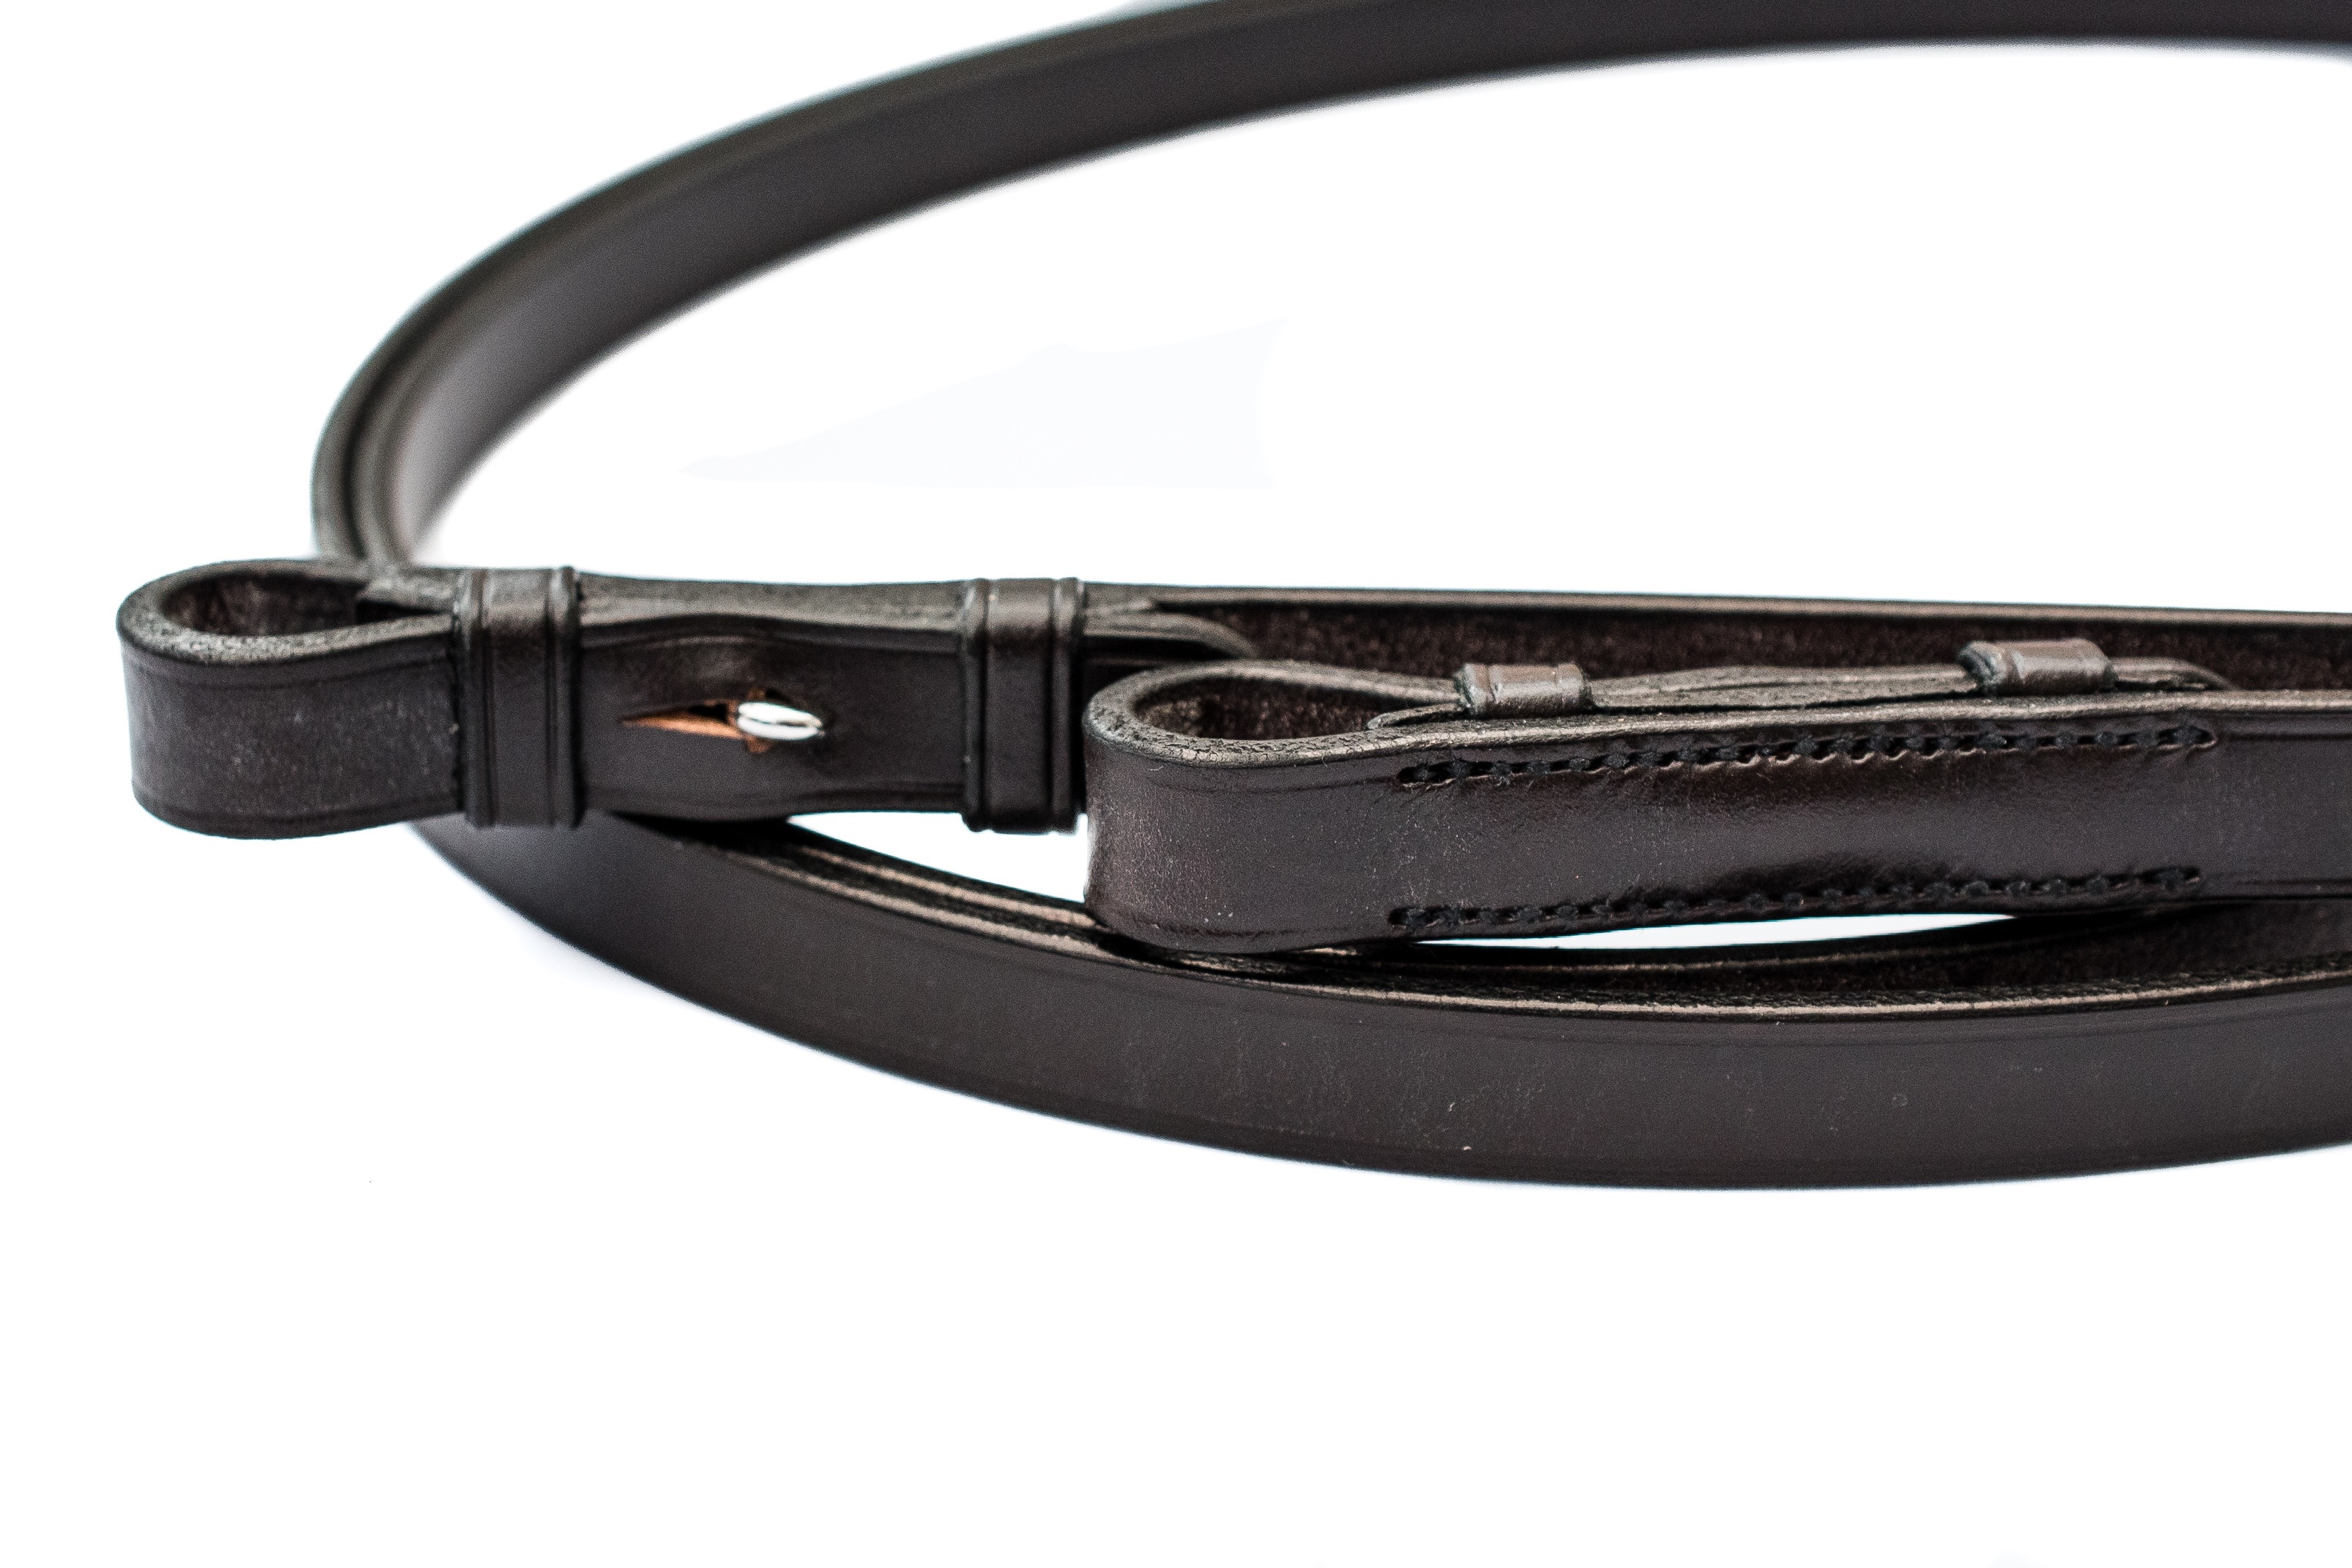 Top quality English leather plain reins by TC Leatherwork